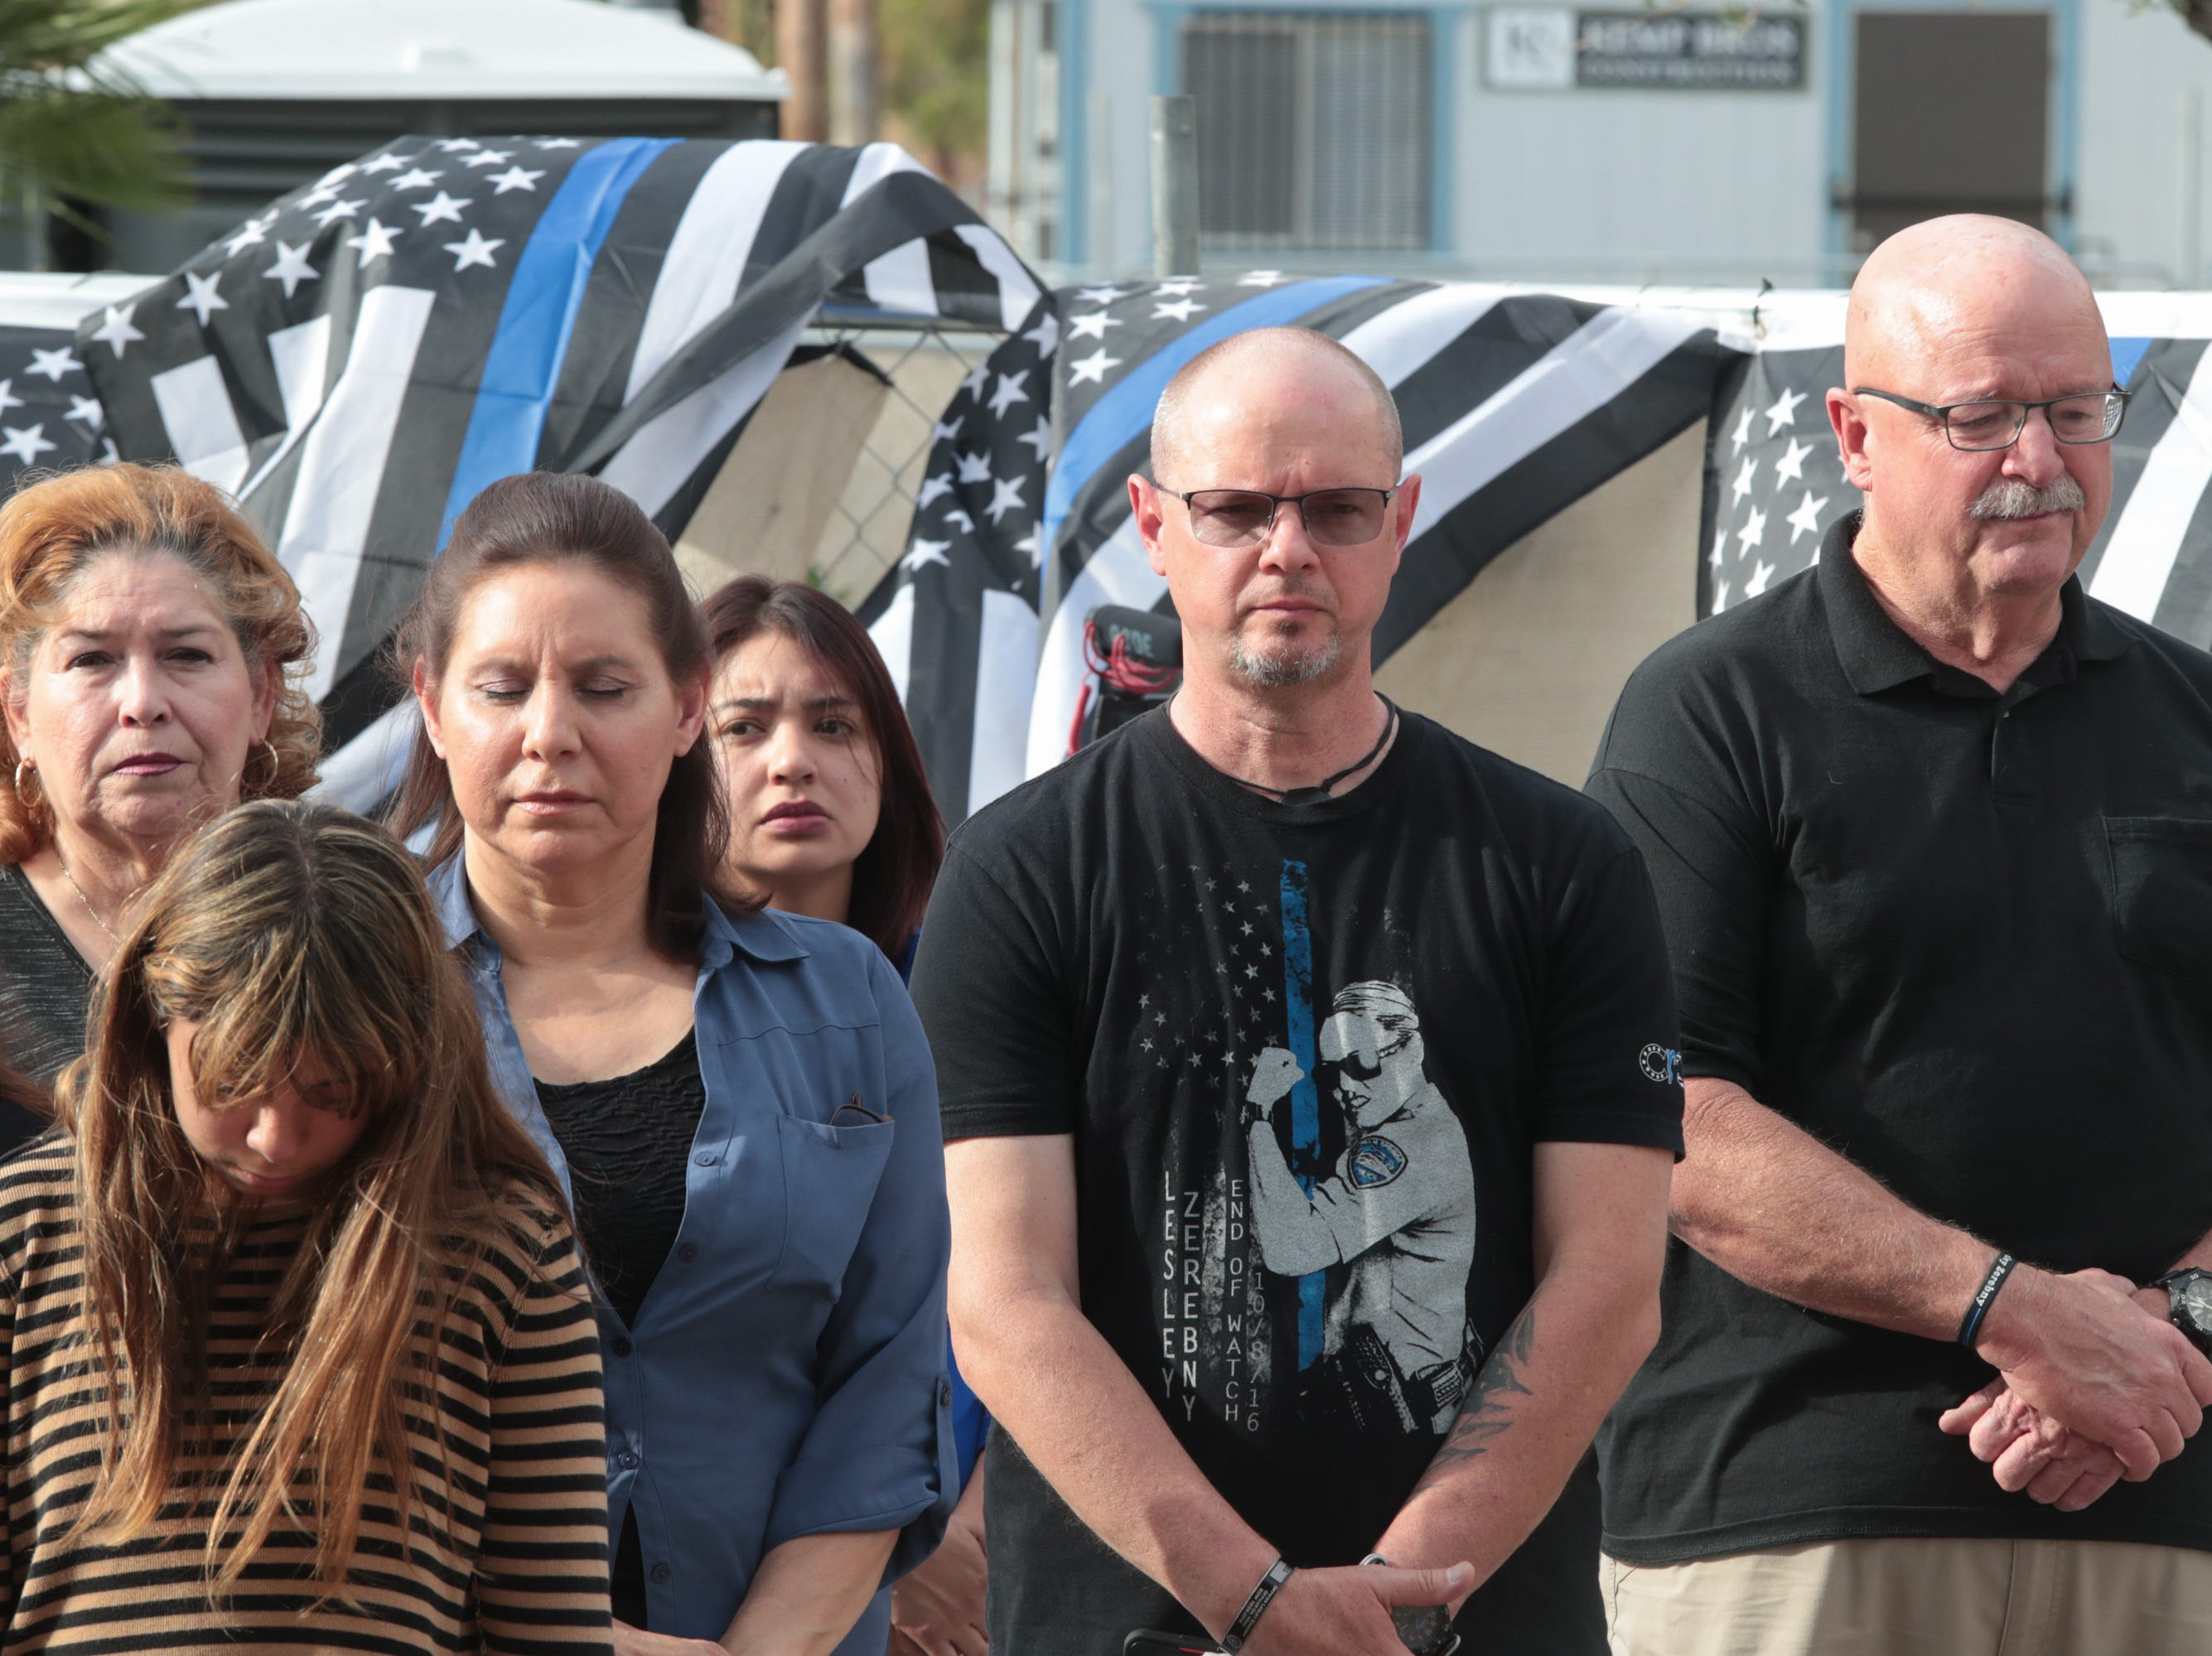 Family members, including Officer Vega's daughter and wife and Officer Zerebny's father -in-law and father, attend a ceremony honoring fallen Palm Springs police officers on Peace Officers Memorial Day, Palm Springs, Calif., May 15, 2019.